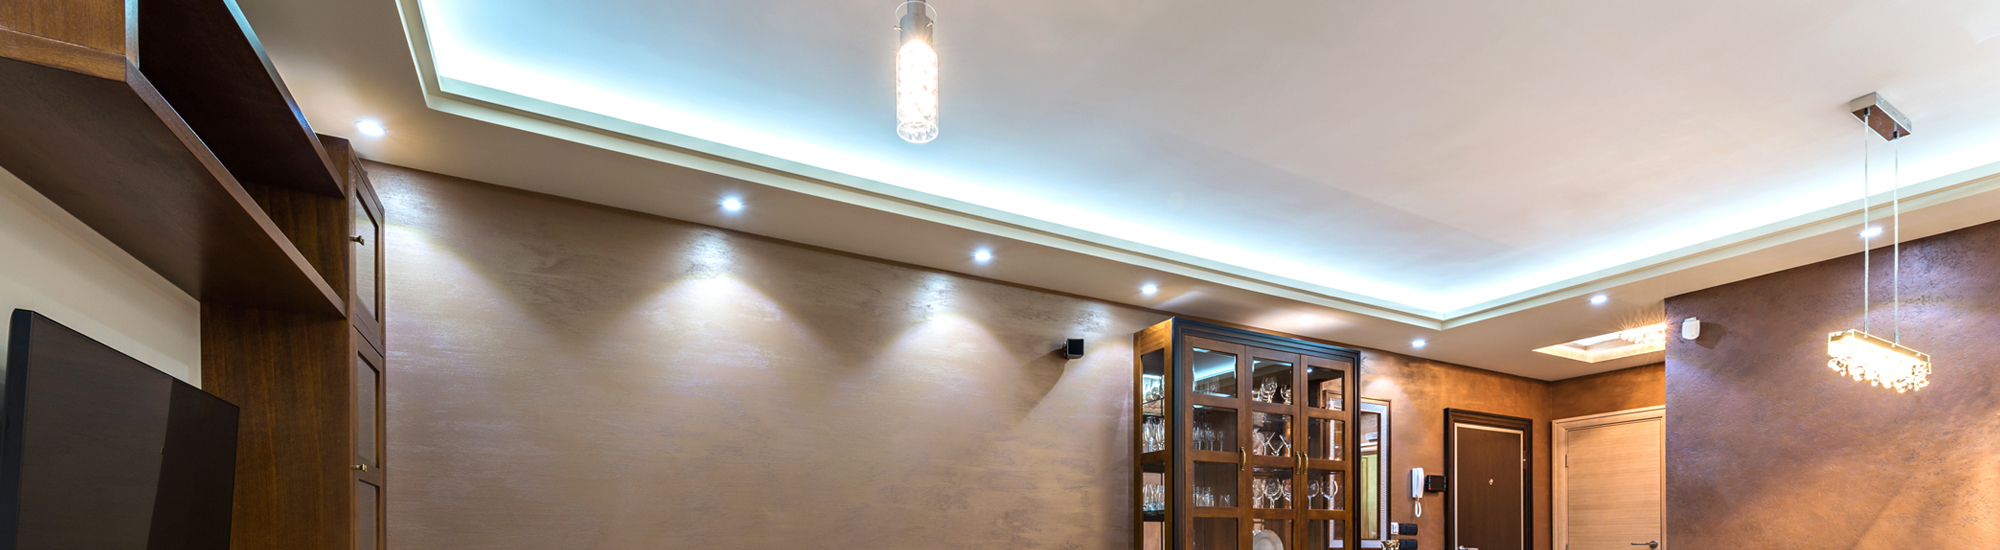 LED light fitted false ceiling